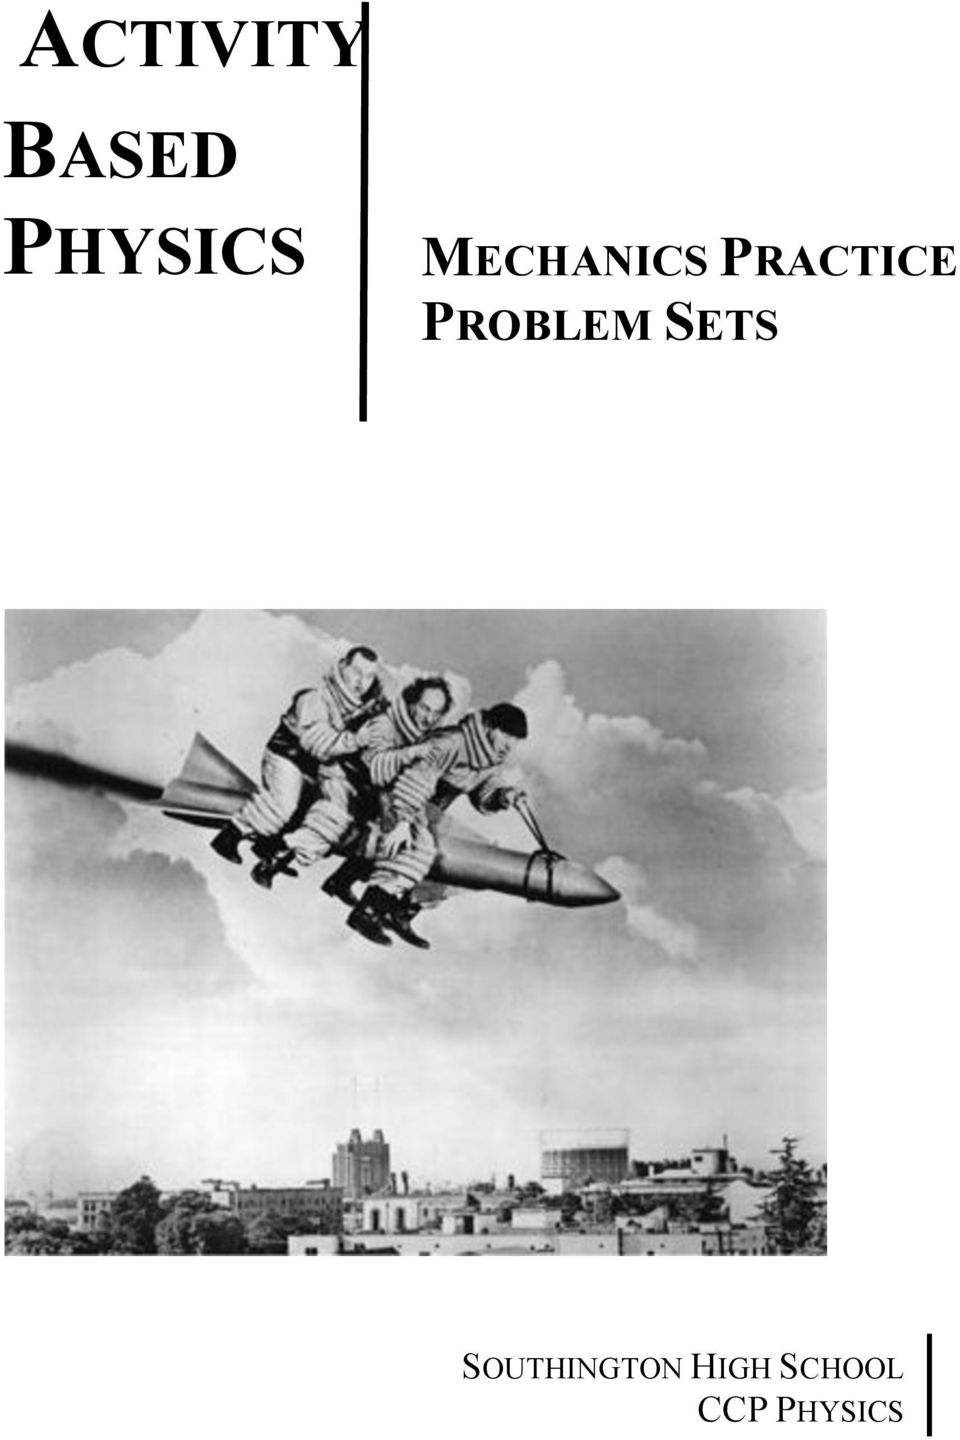 physics problem sets The feynman lectures on physics was based on a two-year introductory physics course that richard feynman taught at caltech from 1961 to 1963 it was physics 1c homework problem set 1 [mar 30, 62] problem set 2 [apr 02, 62] problem set 3 [apr 10, 62.